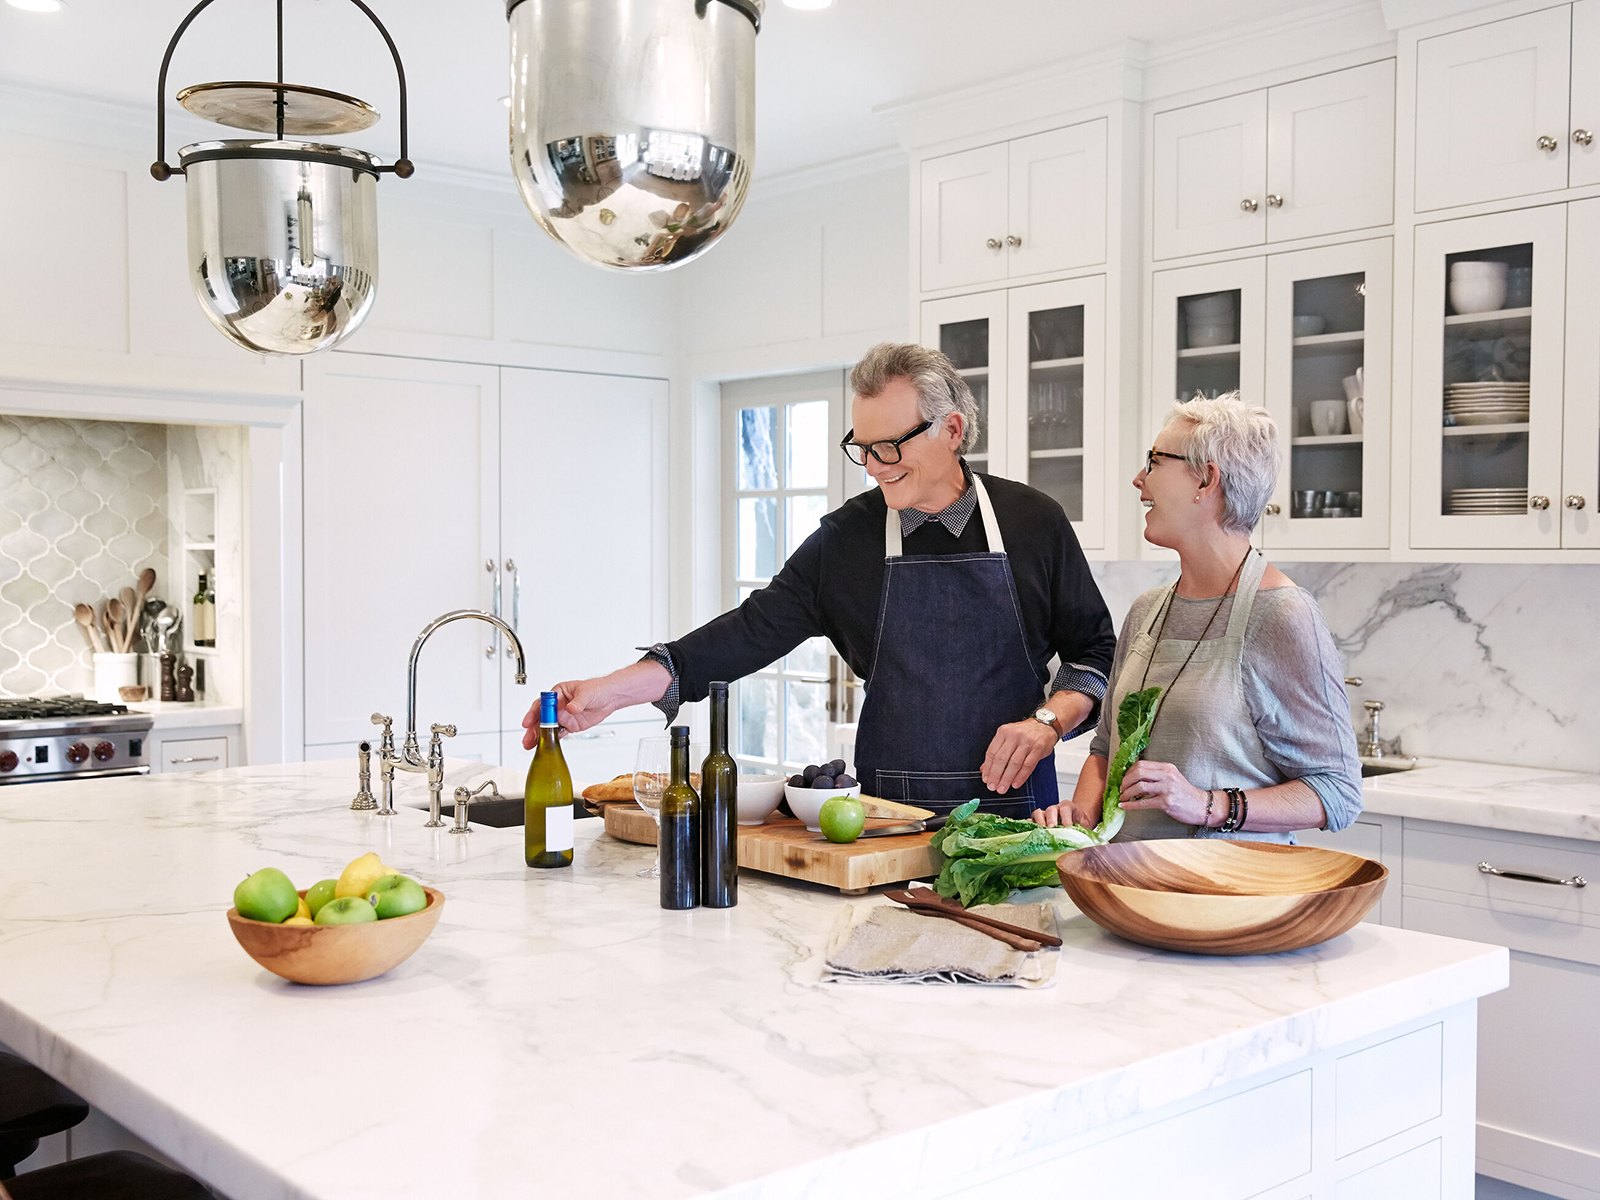 Husband and wife cook together in their newly remodeled kitchen